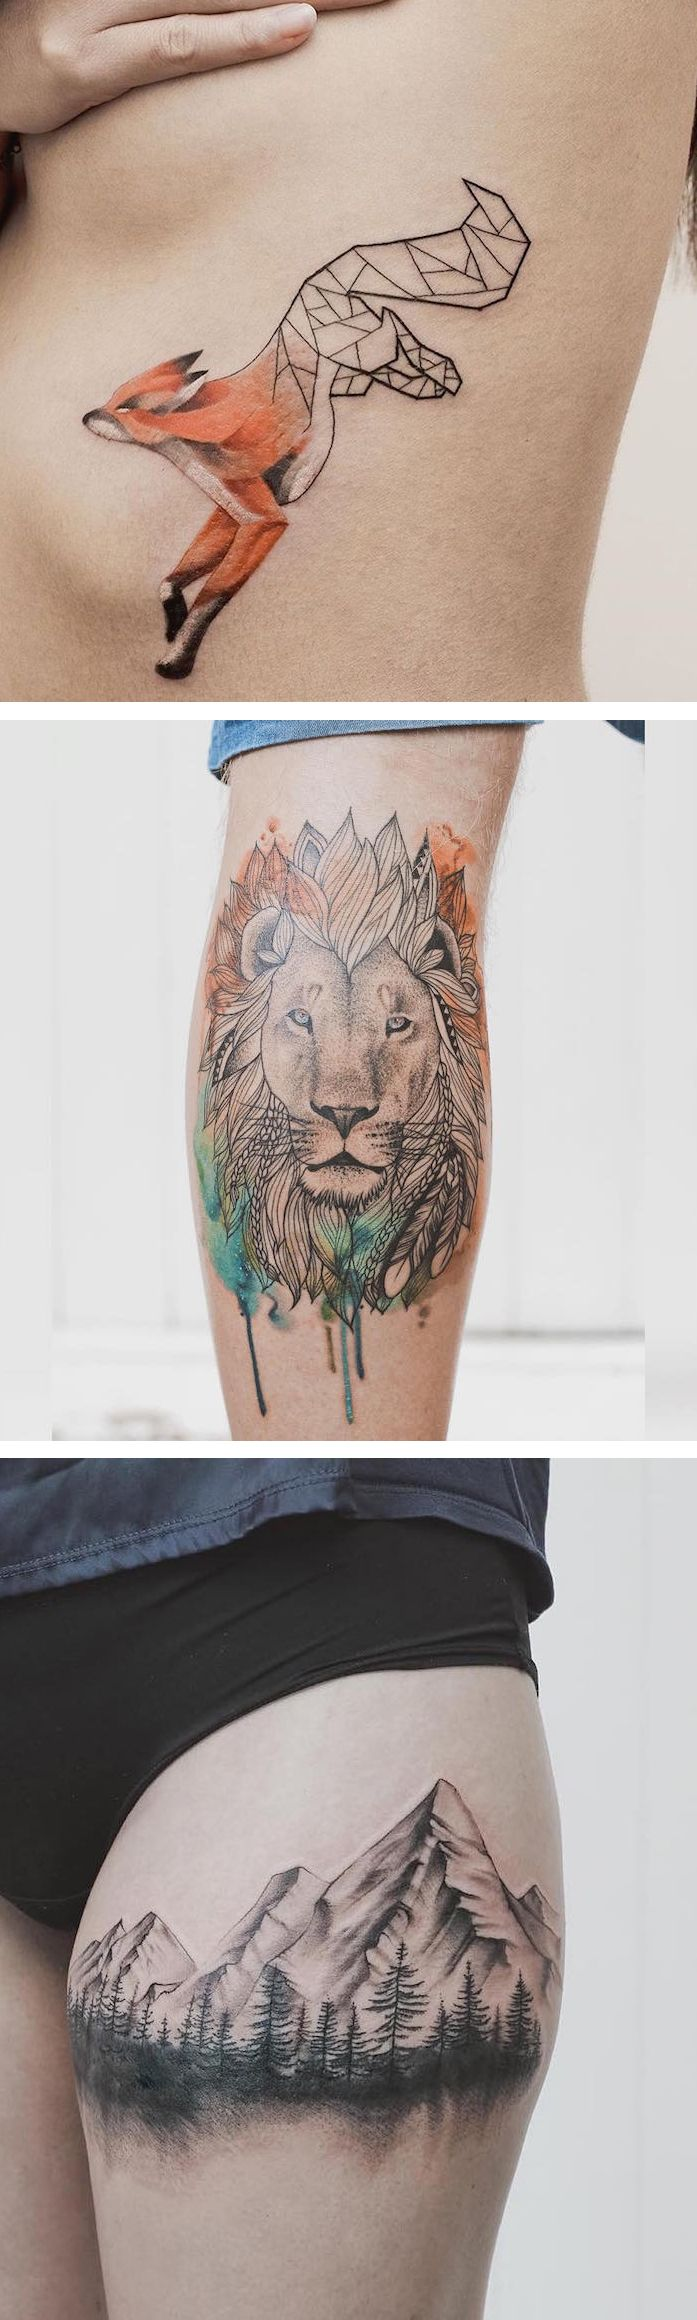 307 best Body Mods - Tattoos images on Pinterest | Drawing, Body ...